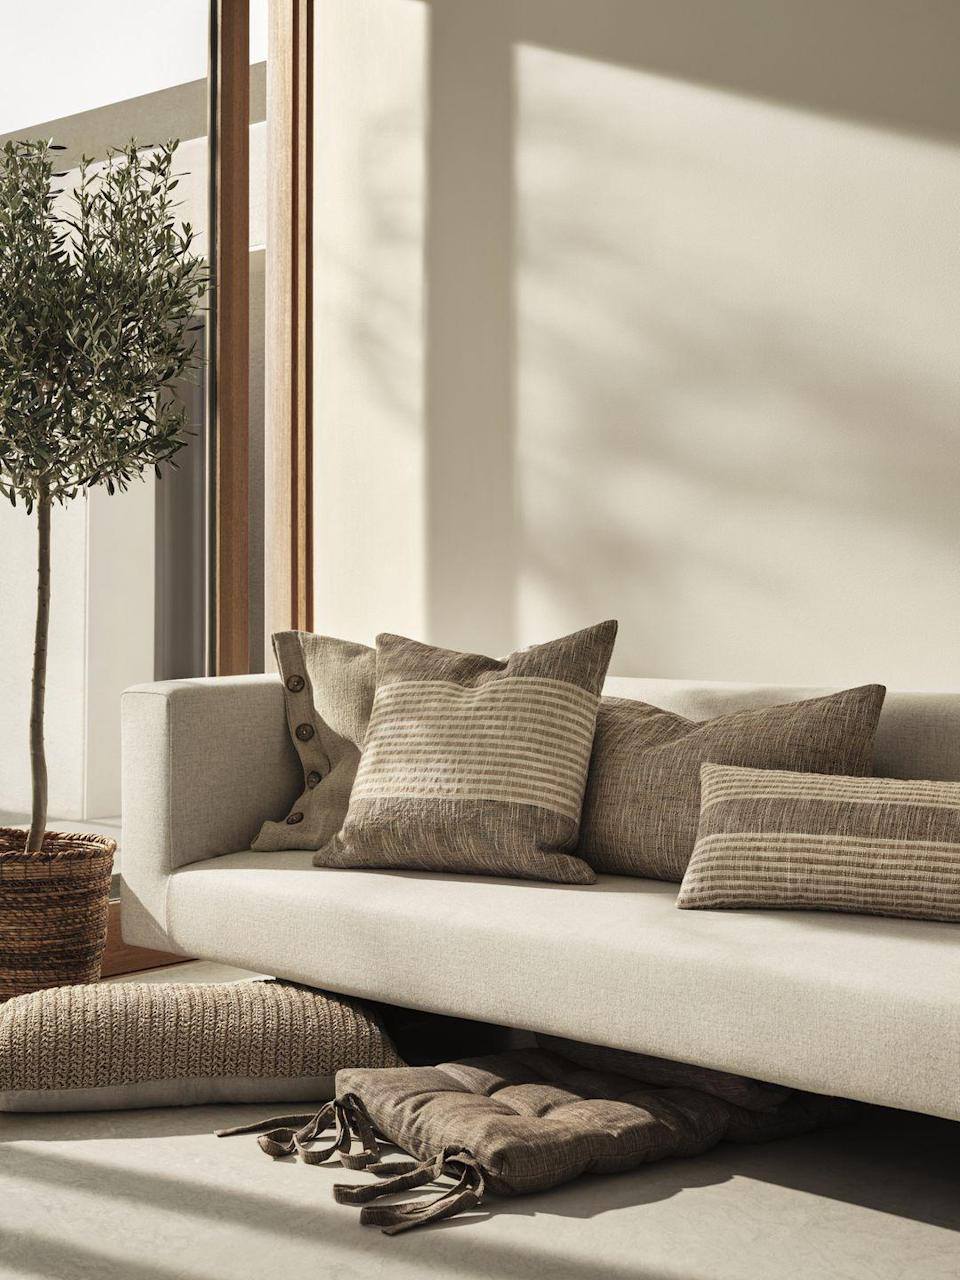 """<p>Create a cosy and personal expression at home with the new range of scatter <a href=""""https://www.housebeautiful.com/uk/lifestyle/shopping/g36003442/floor-cushions/"""" rel=""""nofollow noopener"""" target=""""_blank"""" data-ylk=""""slk:cushions"""" class=""""link rapid-noclick-resp"""">cushions</a> and luxurious blankets. Handwoven by skilled weavers, the plant-dyed cushions will change colour as you wash them, making them even more inimitable. </p><p><a class=""""link rapid-noclick-resp"""" href=""""https://go.redirectingat.com?id=127X1599956&url=https%3A%2F%2Fwww2.hm.com%2Fen_gb%2Fhome.html&sref=https%3A%2F%2Fwww.housebeautiful.com%2Fuk%2Flifestyle%2Fshopping%2Fg36671419%2Fhandm-home-love-of-craft-collection-artisans%2F"""" rel=""""nofollow noopener"""" target=""""_blank"""" data-ylk=""""slk:COMING SOON"""">COMING SOON</a></p>"""